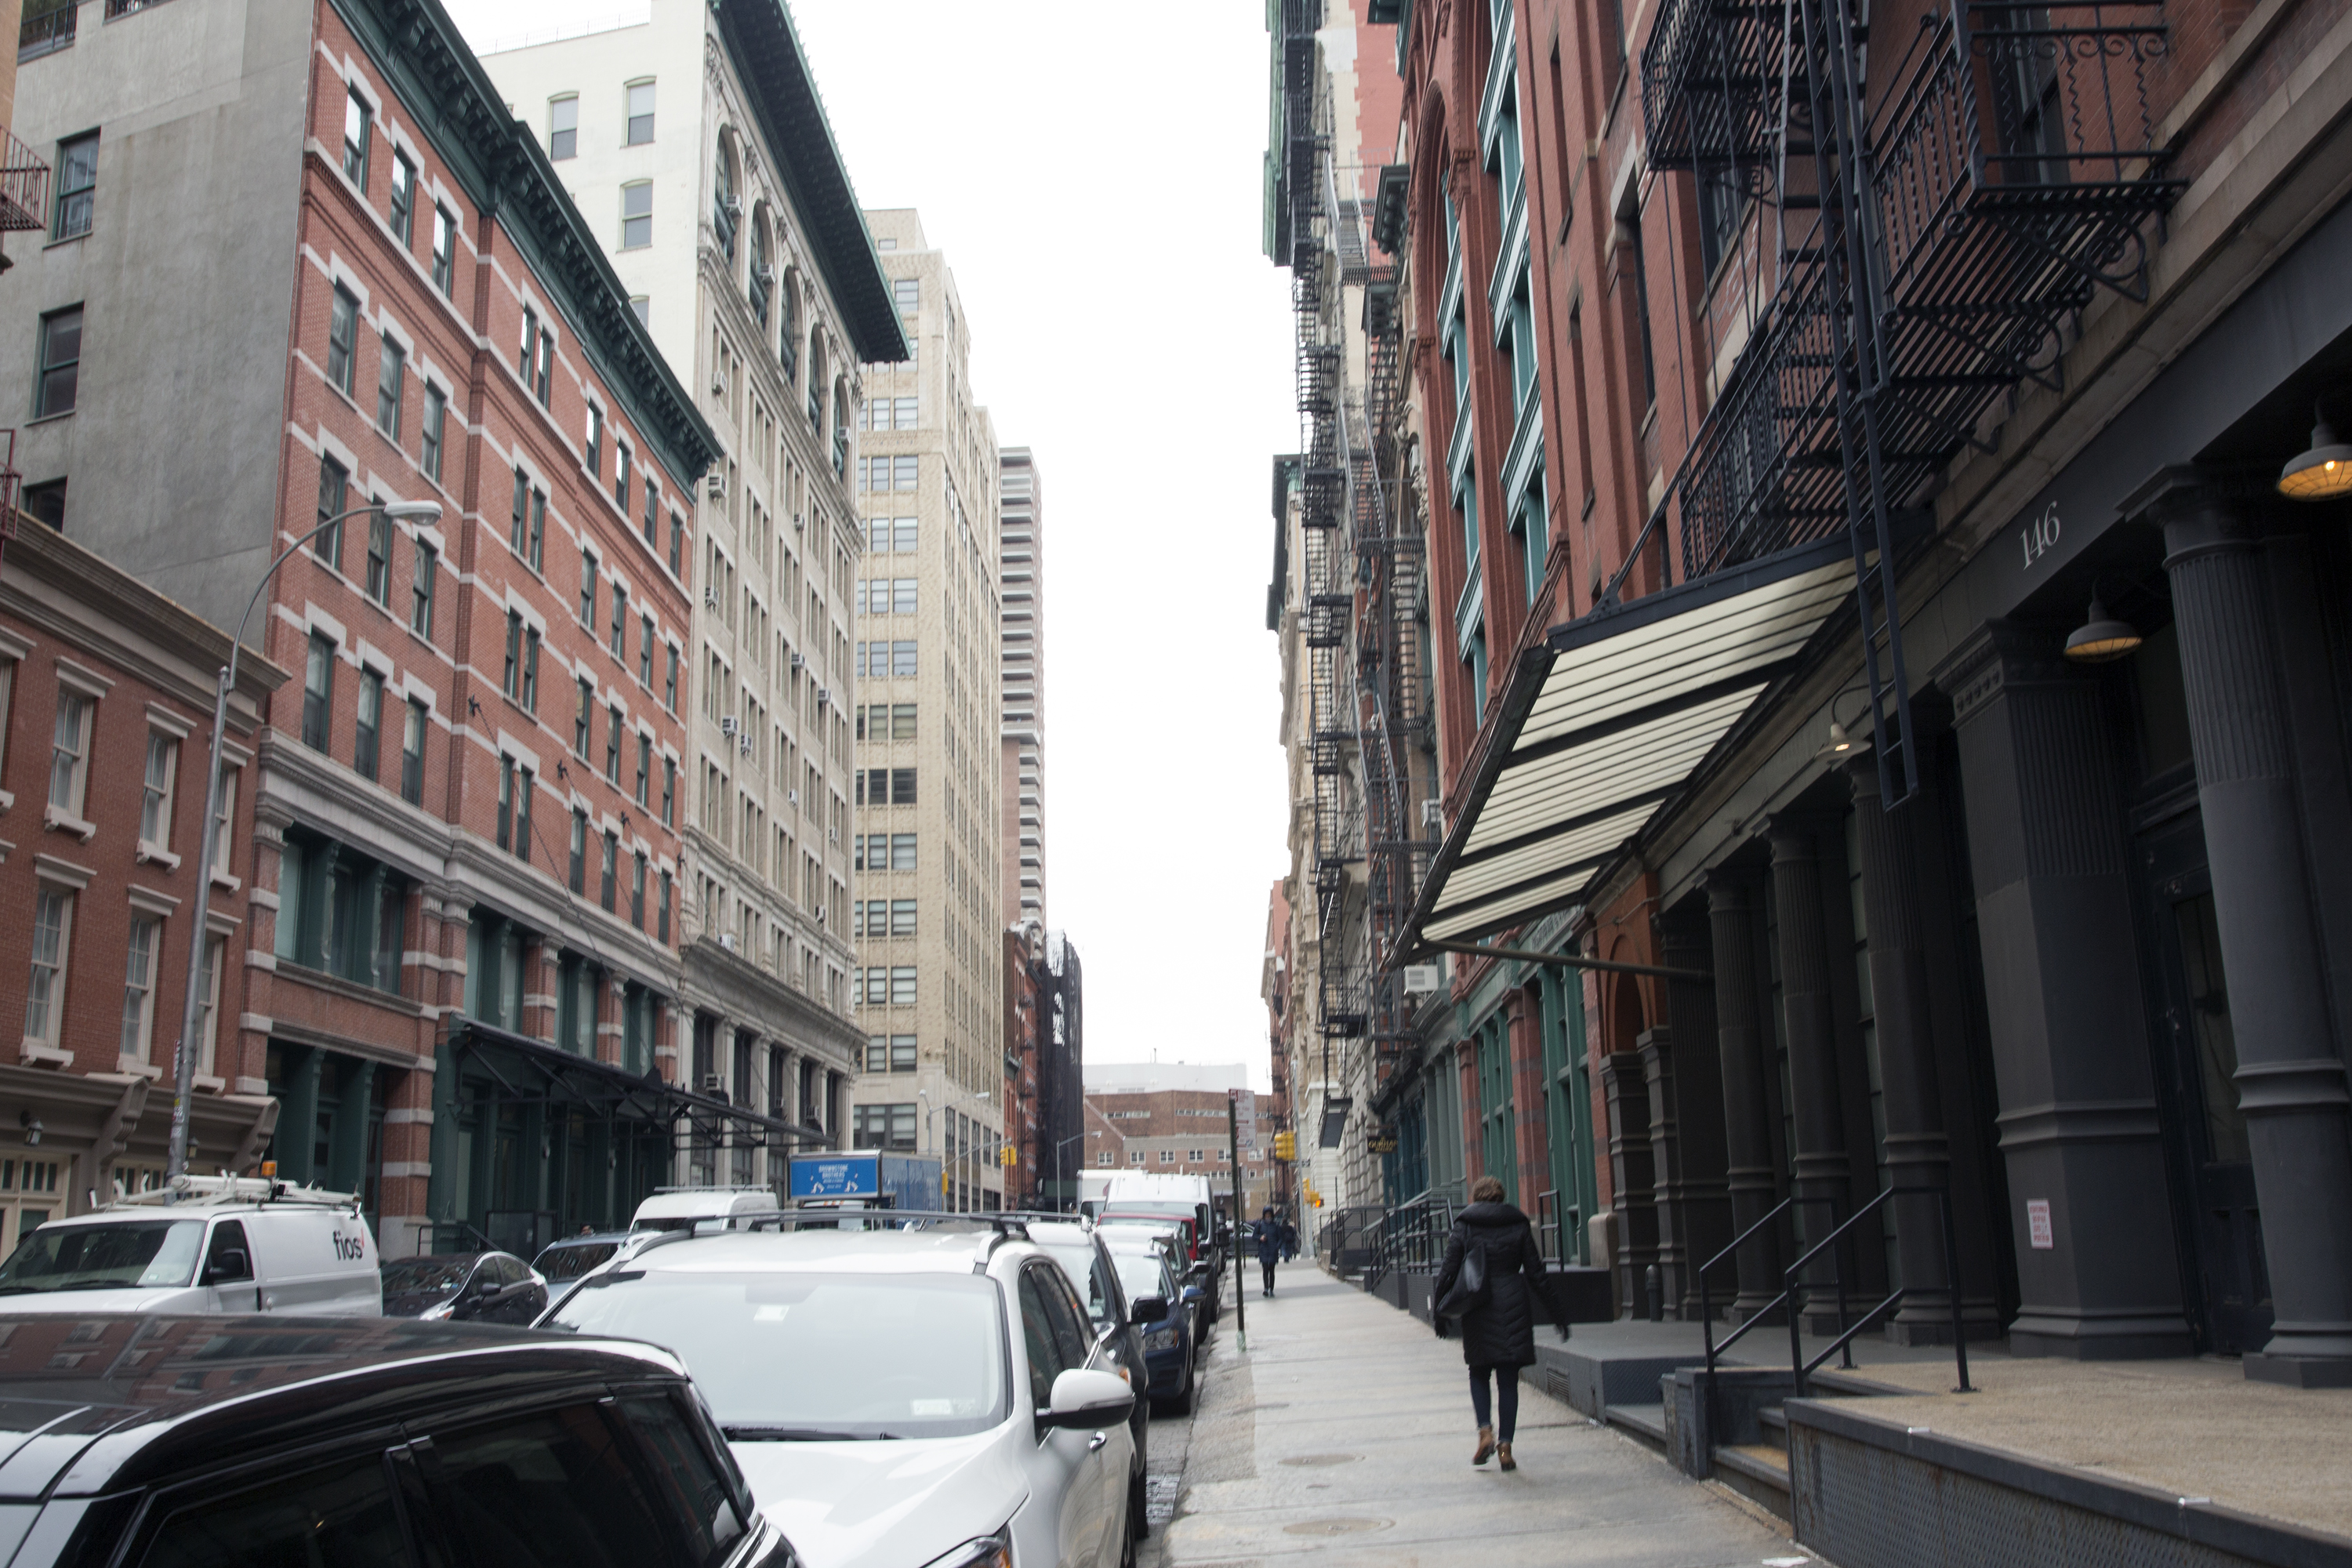 Passerby on Franklin Street paid little mind to the superstar's residences, pictured on the left side of the street, Tuesday morning.